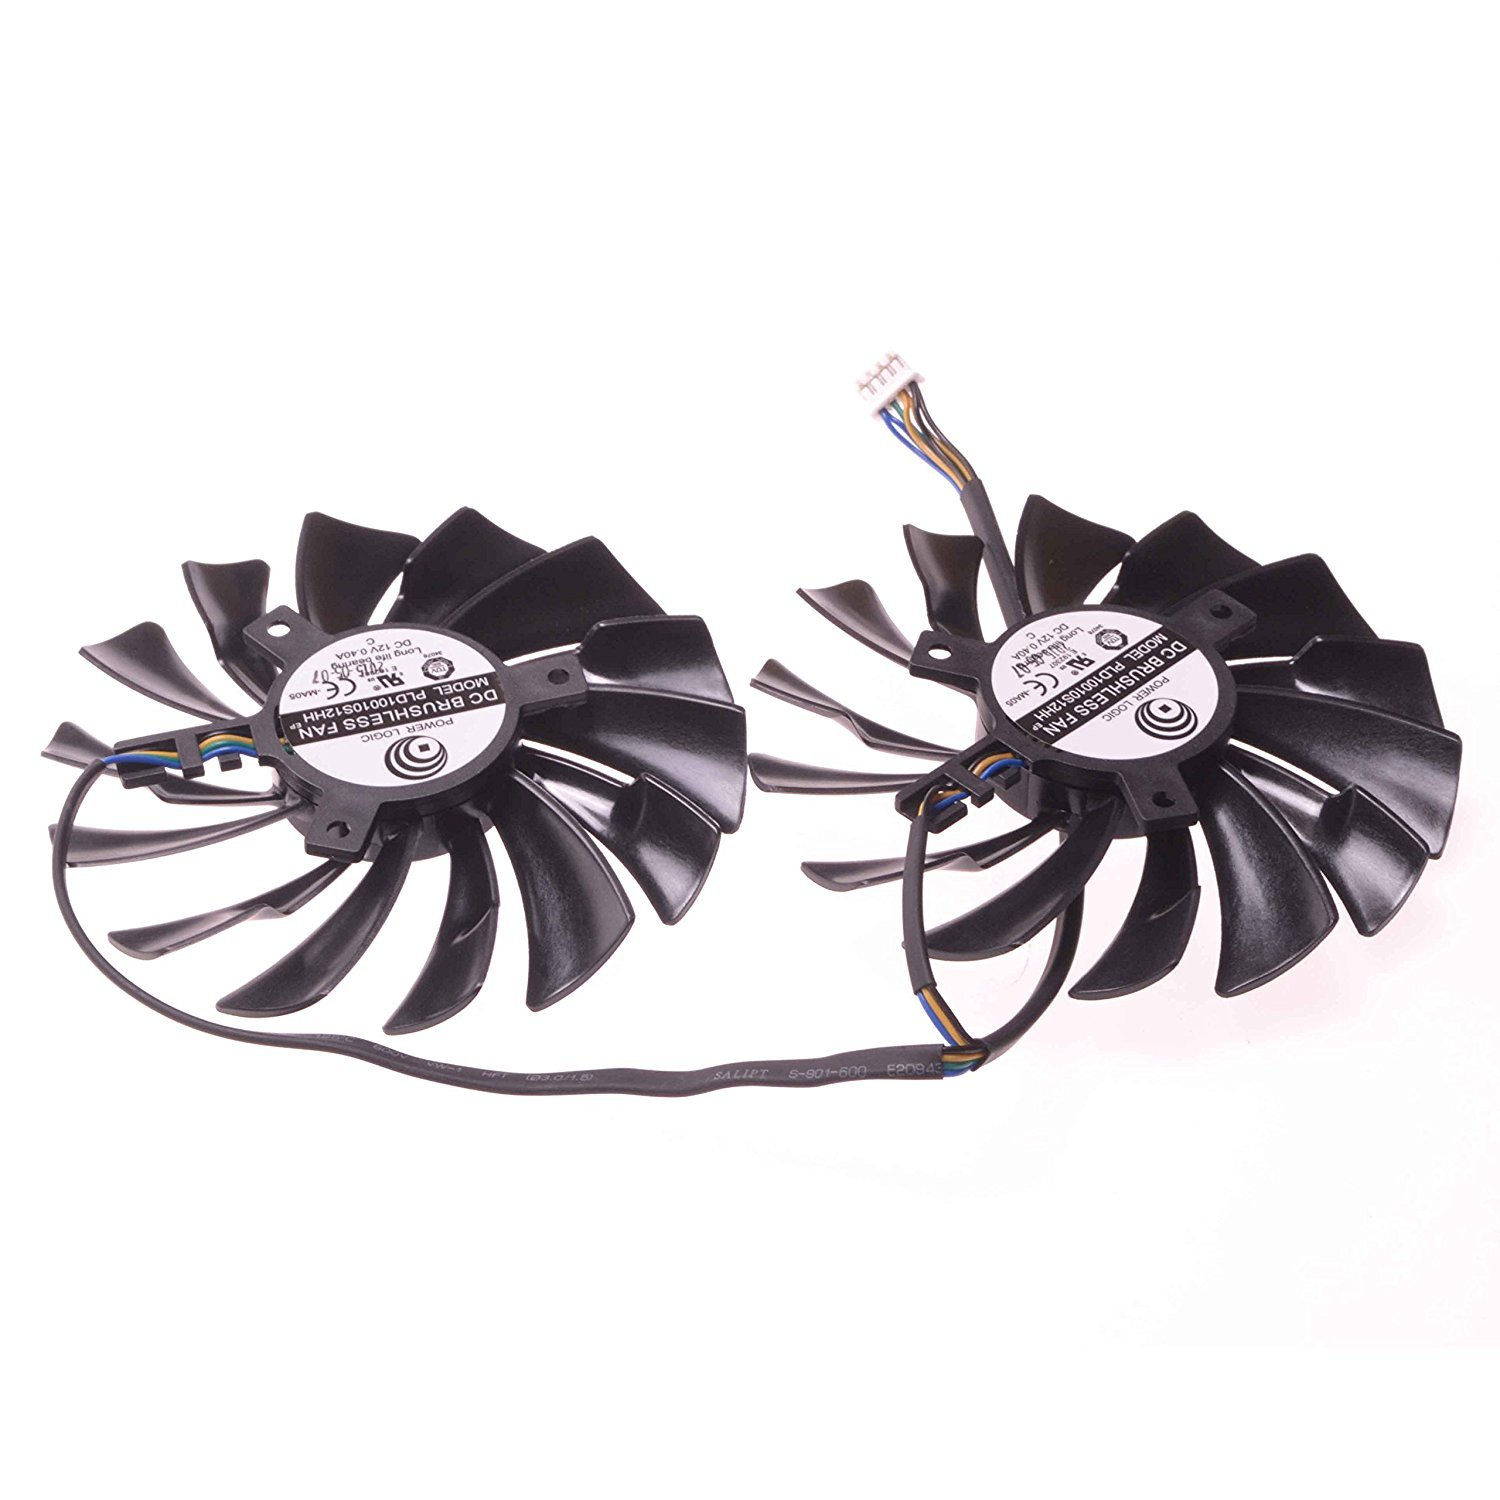 Replacement Video Card Cooling Fan For GTX950 GTX960 R9 380 R9 390 R9 390X Graphics Card Fan PLD10010S12HH 12V 0.4A 94mm 4 Pin by Tebuyus